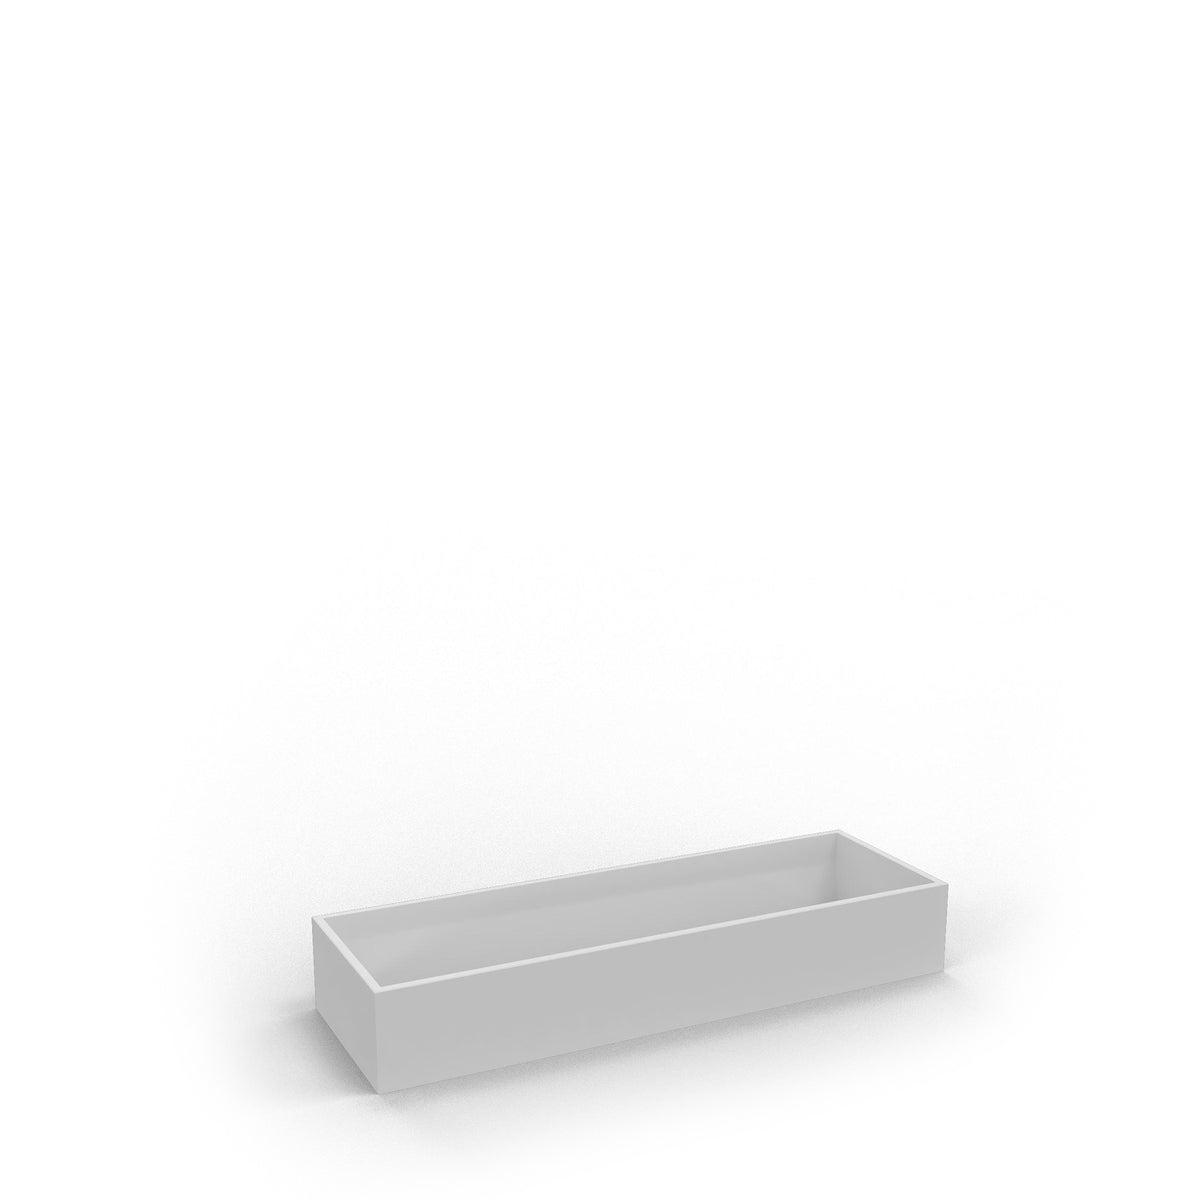 Edsbyn Office Neat Green Planter Box White 1200mm